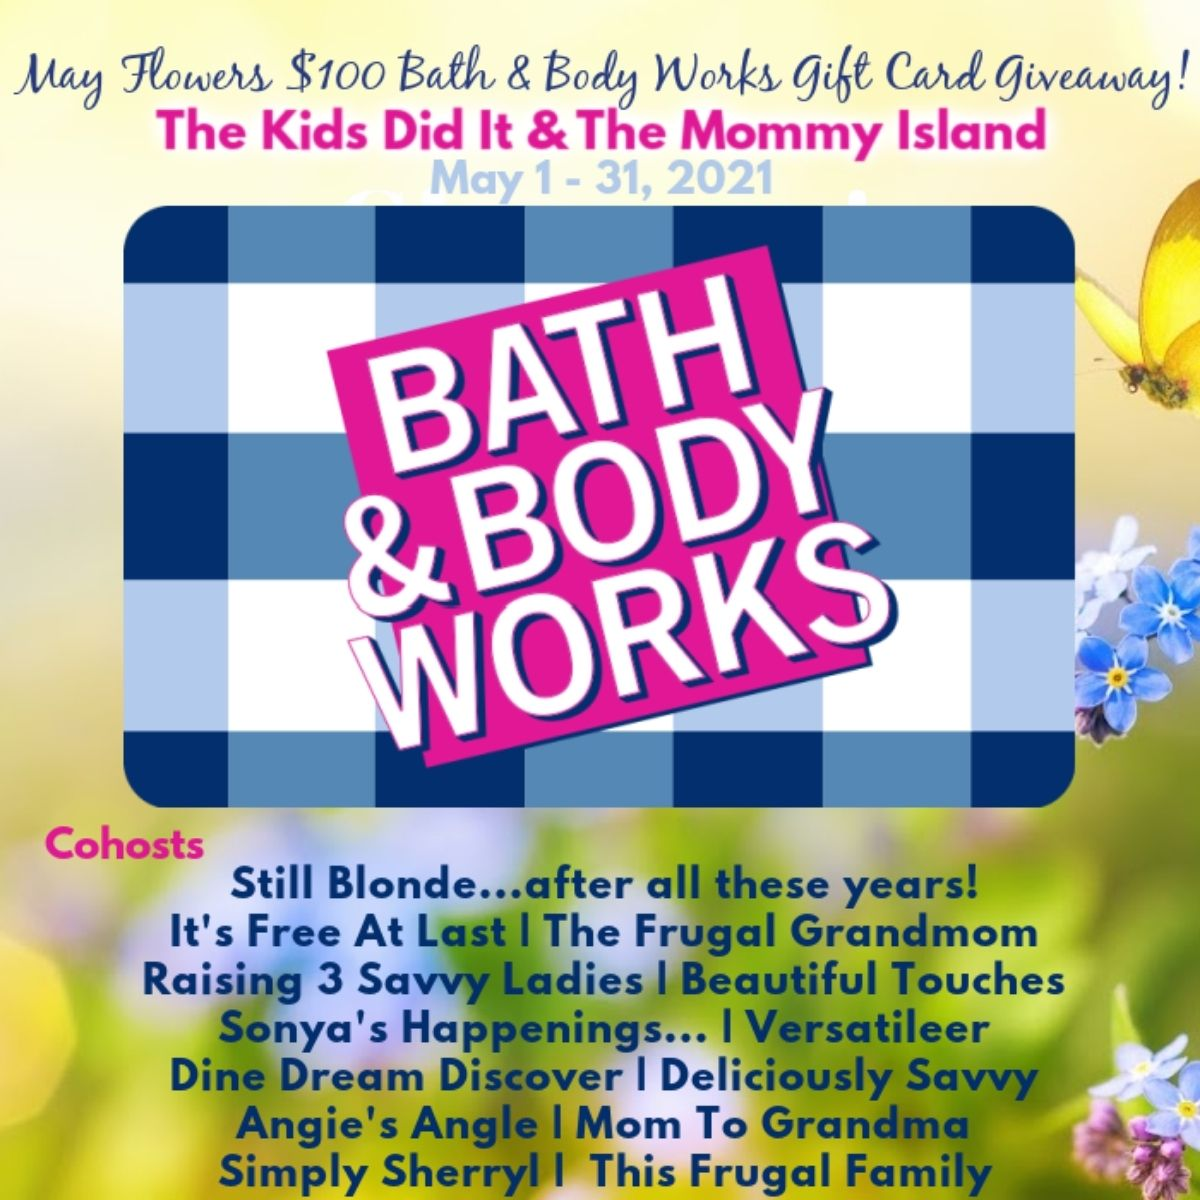 What an amazing way to start the new year! Enter to win a $100 Bath and Body Works Gift Card. Head down to the Rafflecopter to enter. Good luck!